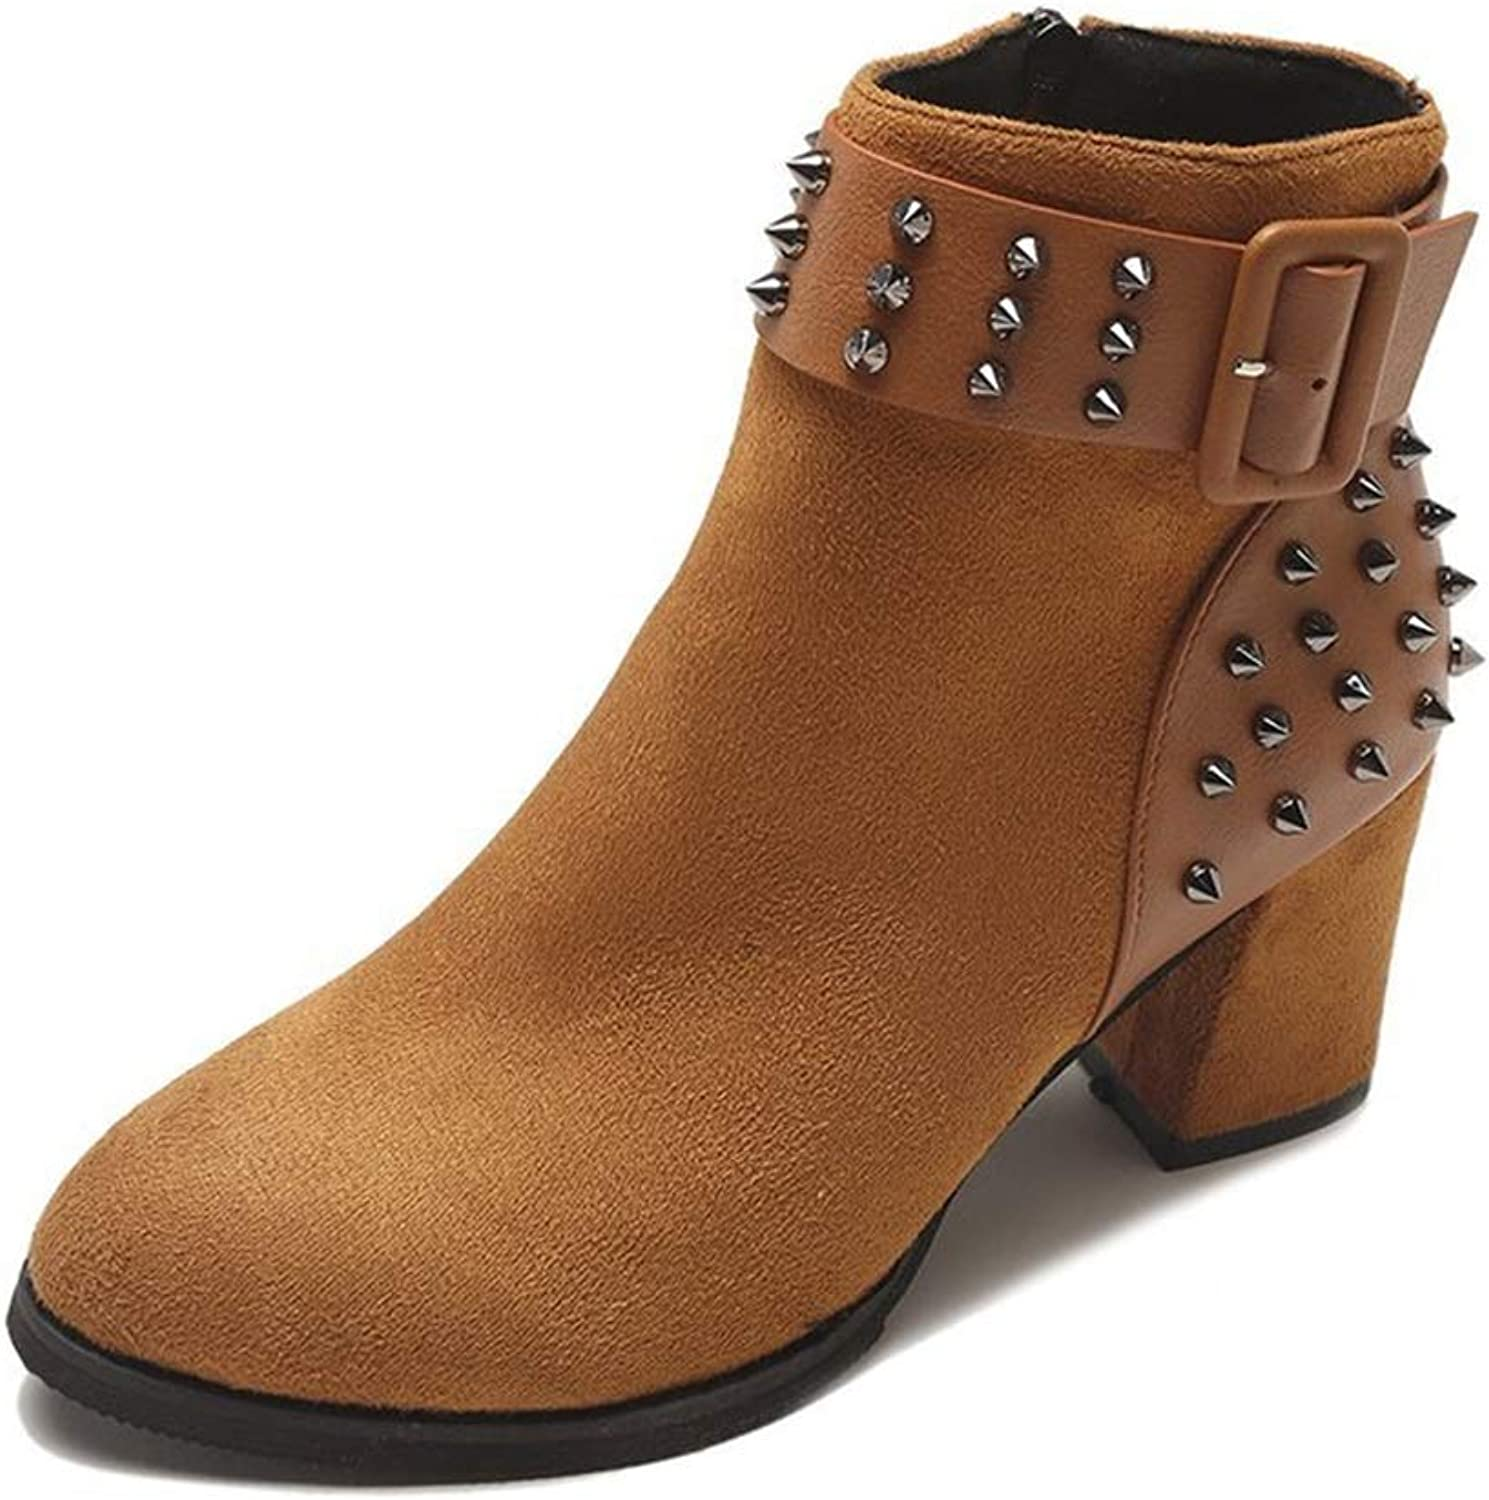 Women's Ankle Boots, Fashion Rivet shoes Autumn Winter New Pointed Stilettos Suede Martin Booties Black Brown (color   B, Size   39)